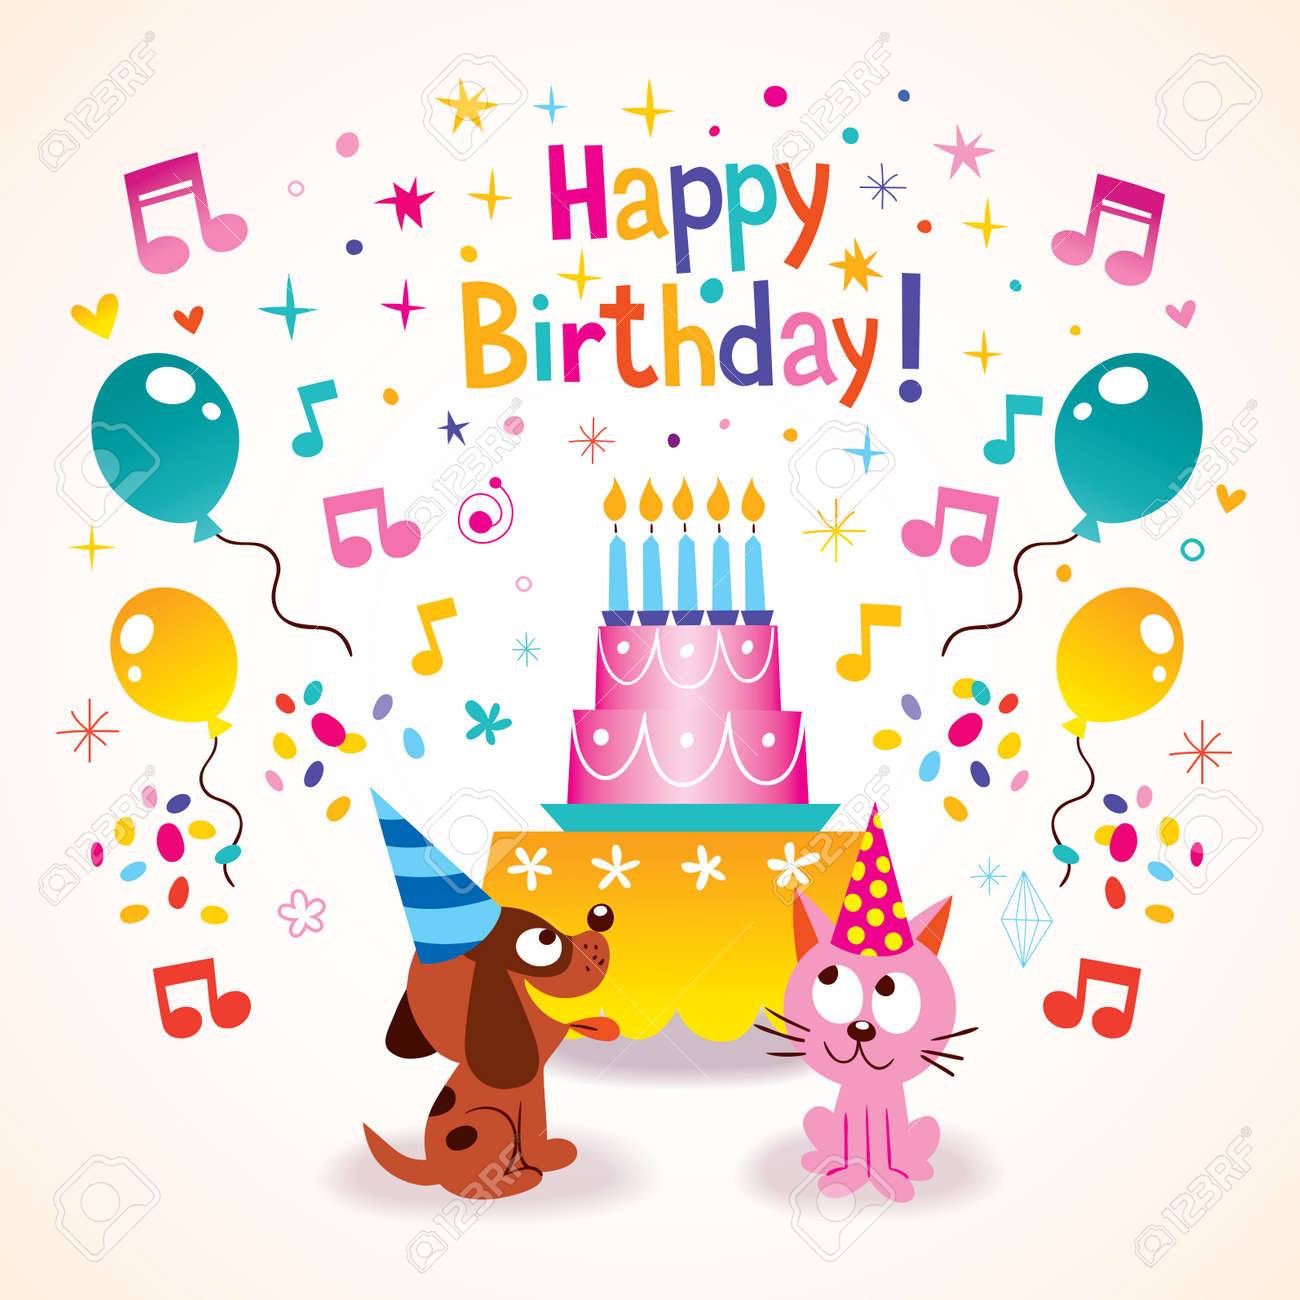 Happy birthday kids greeting card royalty free cliparts vectors happy birthday kids greeting card stock vector 60563879 bookmarktalkfo Images